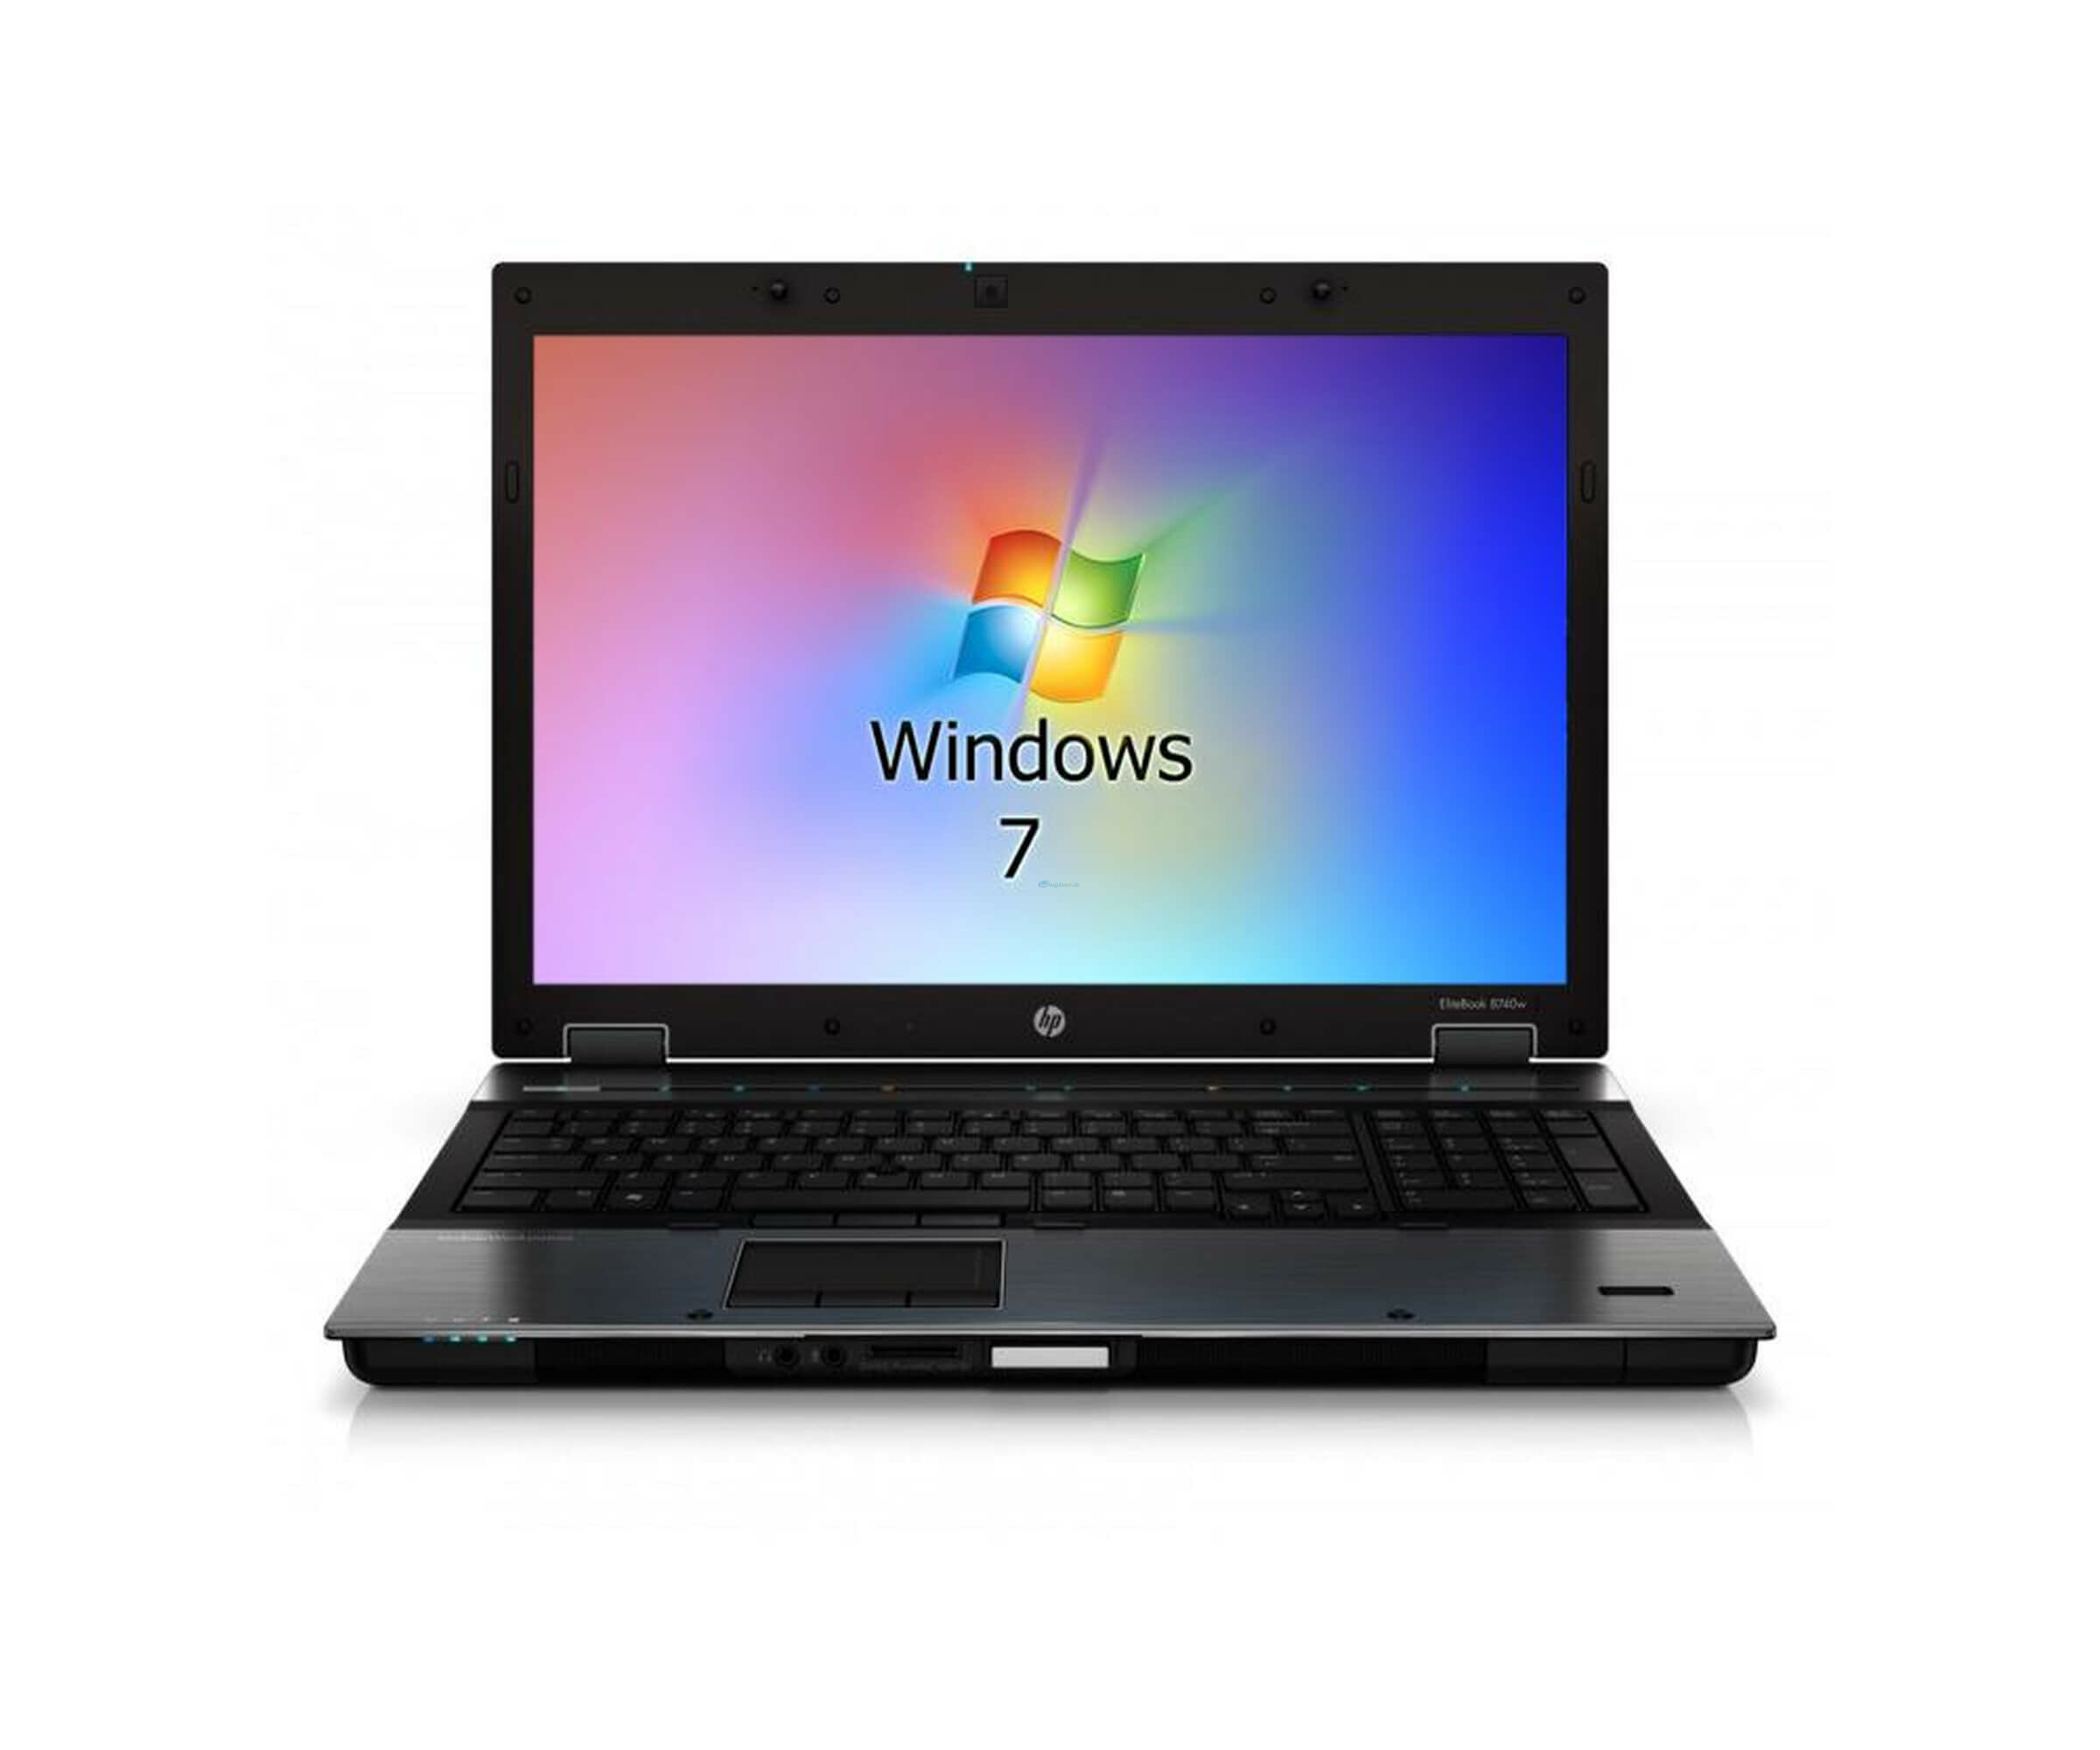 HP EliteBook Mobile Workstation 8740w - 43.2 cm 17 - Core i7 820QM - 8 GB RAM - 320 GB HDD - W7